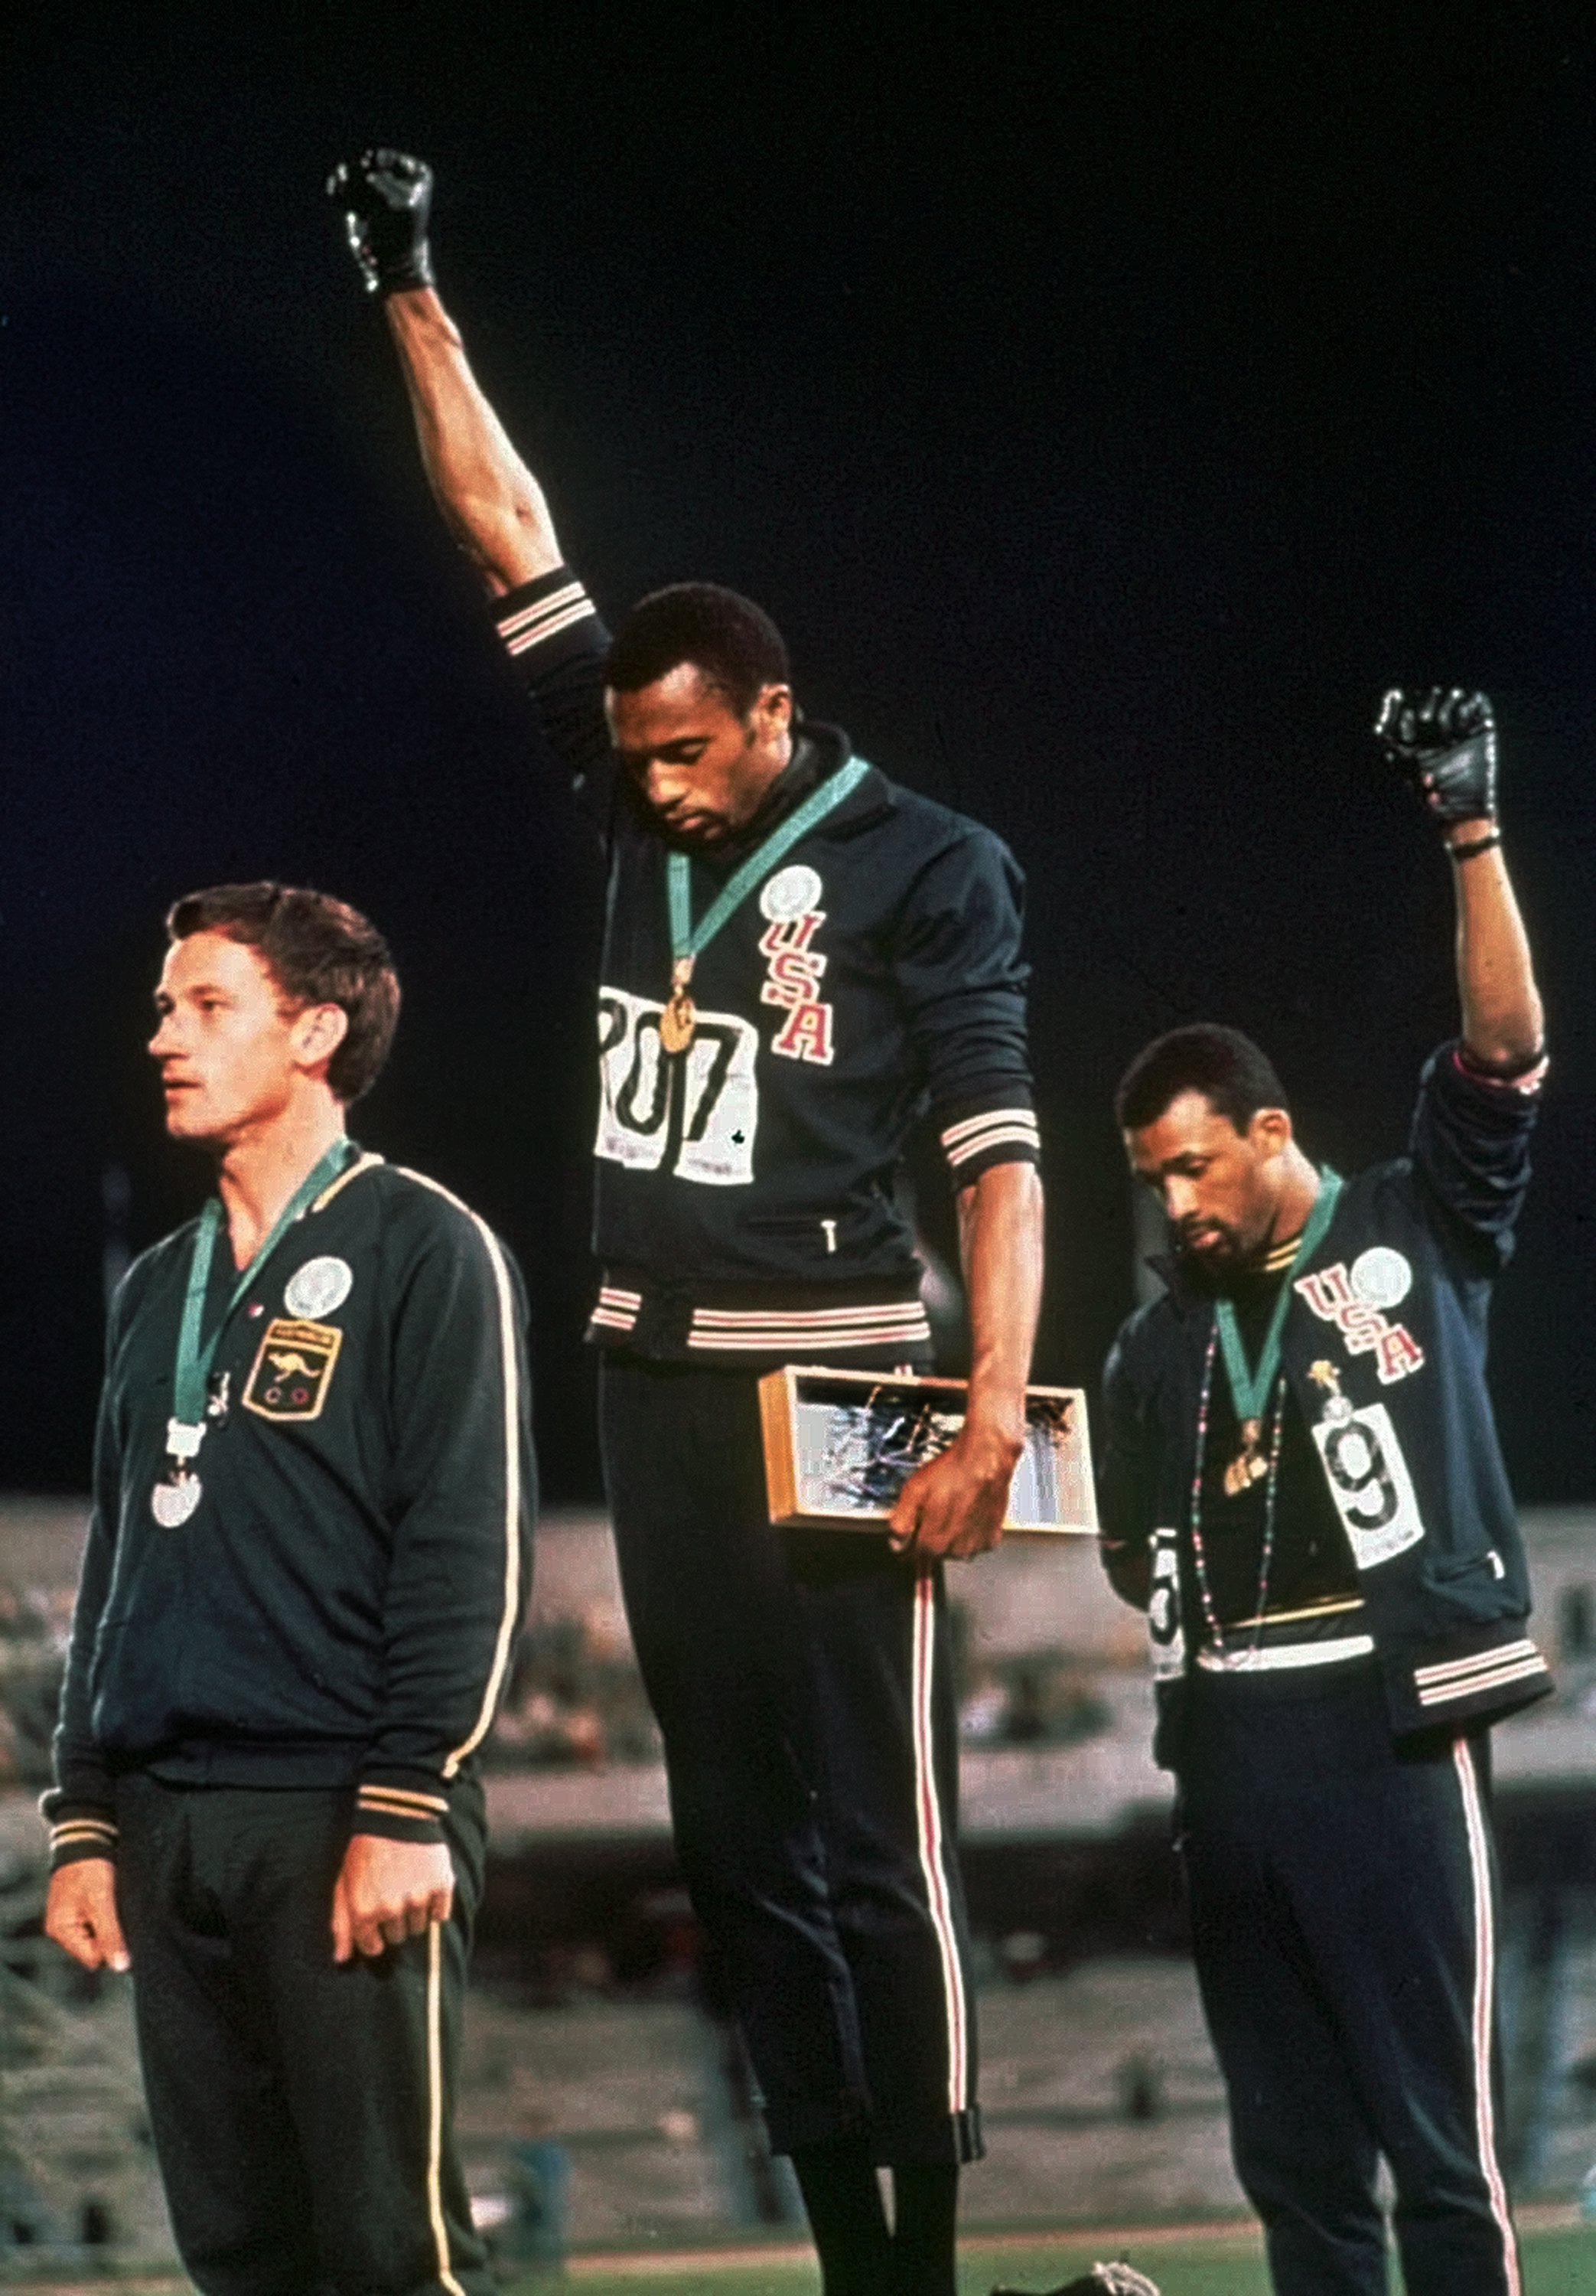 Extending gloved hands skyward in racial protest, U.S. athletes Tommie Smith, center, and John Carlos stare downward during the playing of the Star Spangled Banner after Smith received the gold and Carlos the bronze for the 200 meter run at the Summer Olympic Games in Mexico City on Oct. 16, 1968. AP Photo/FILE.